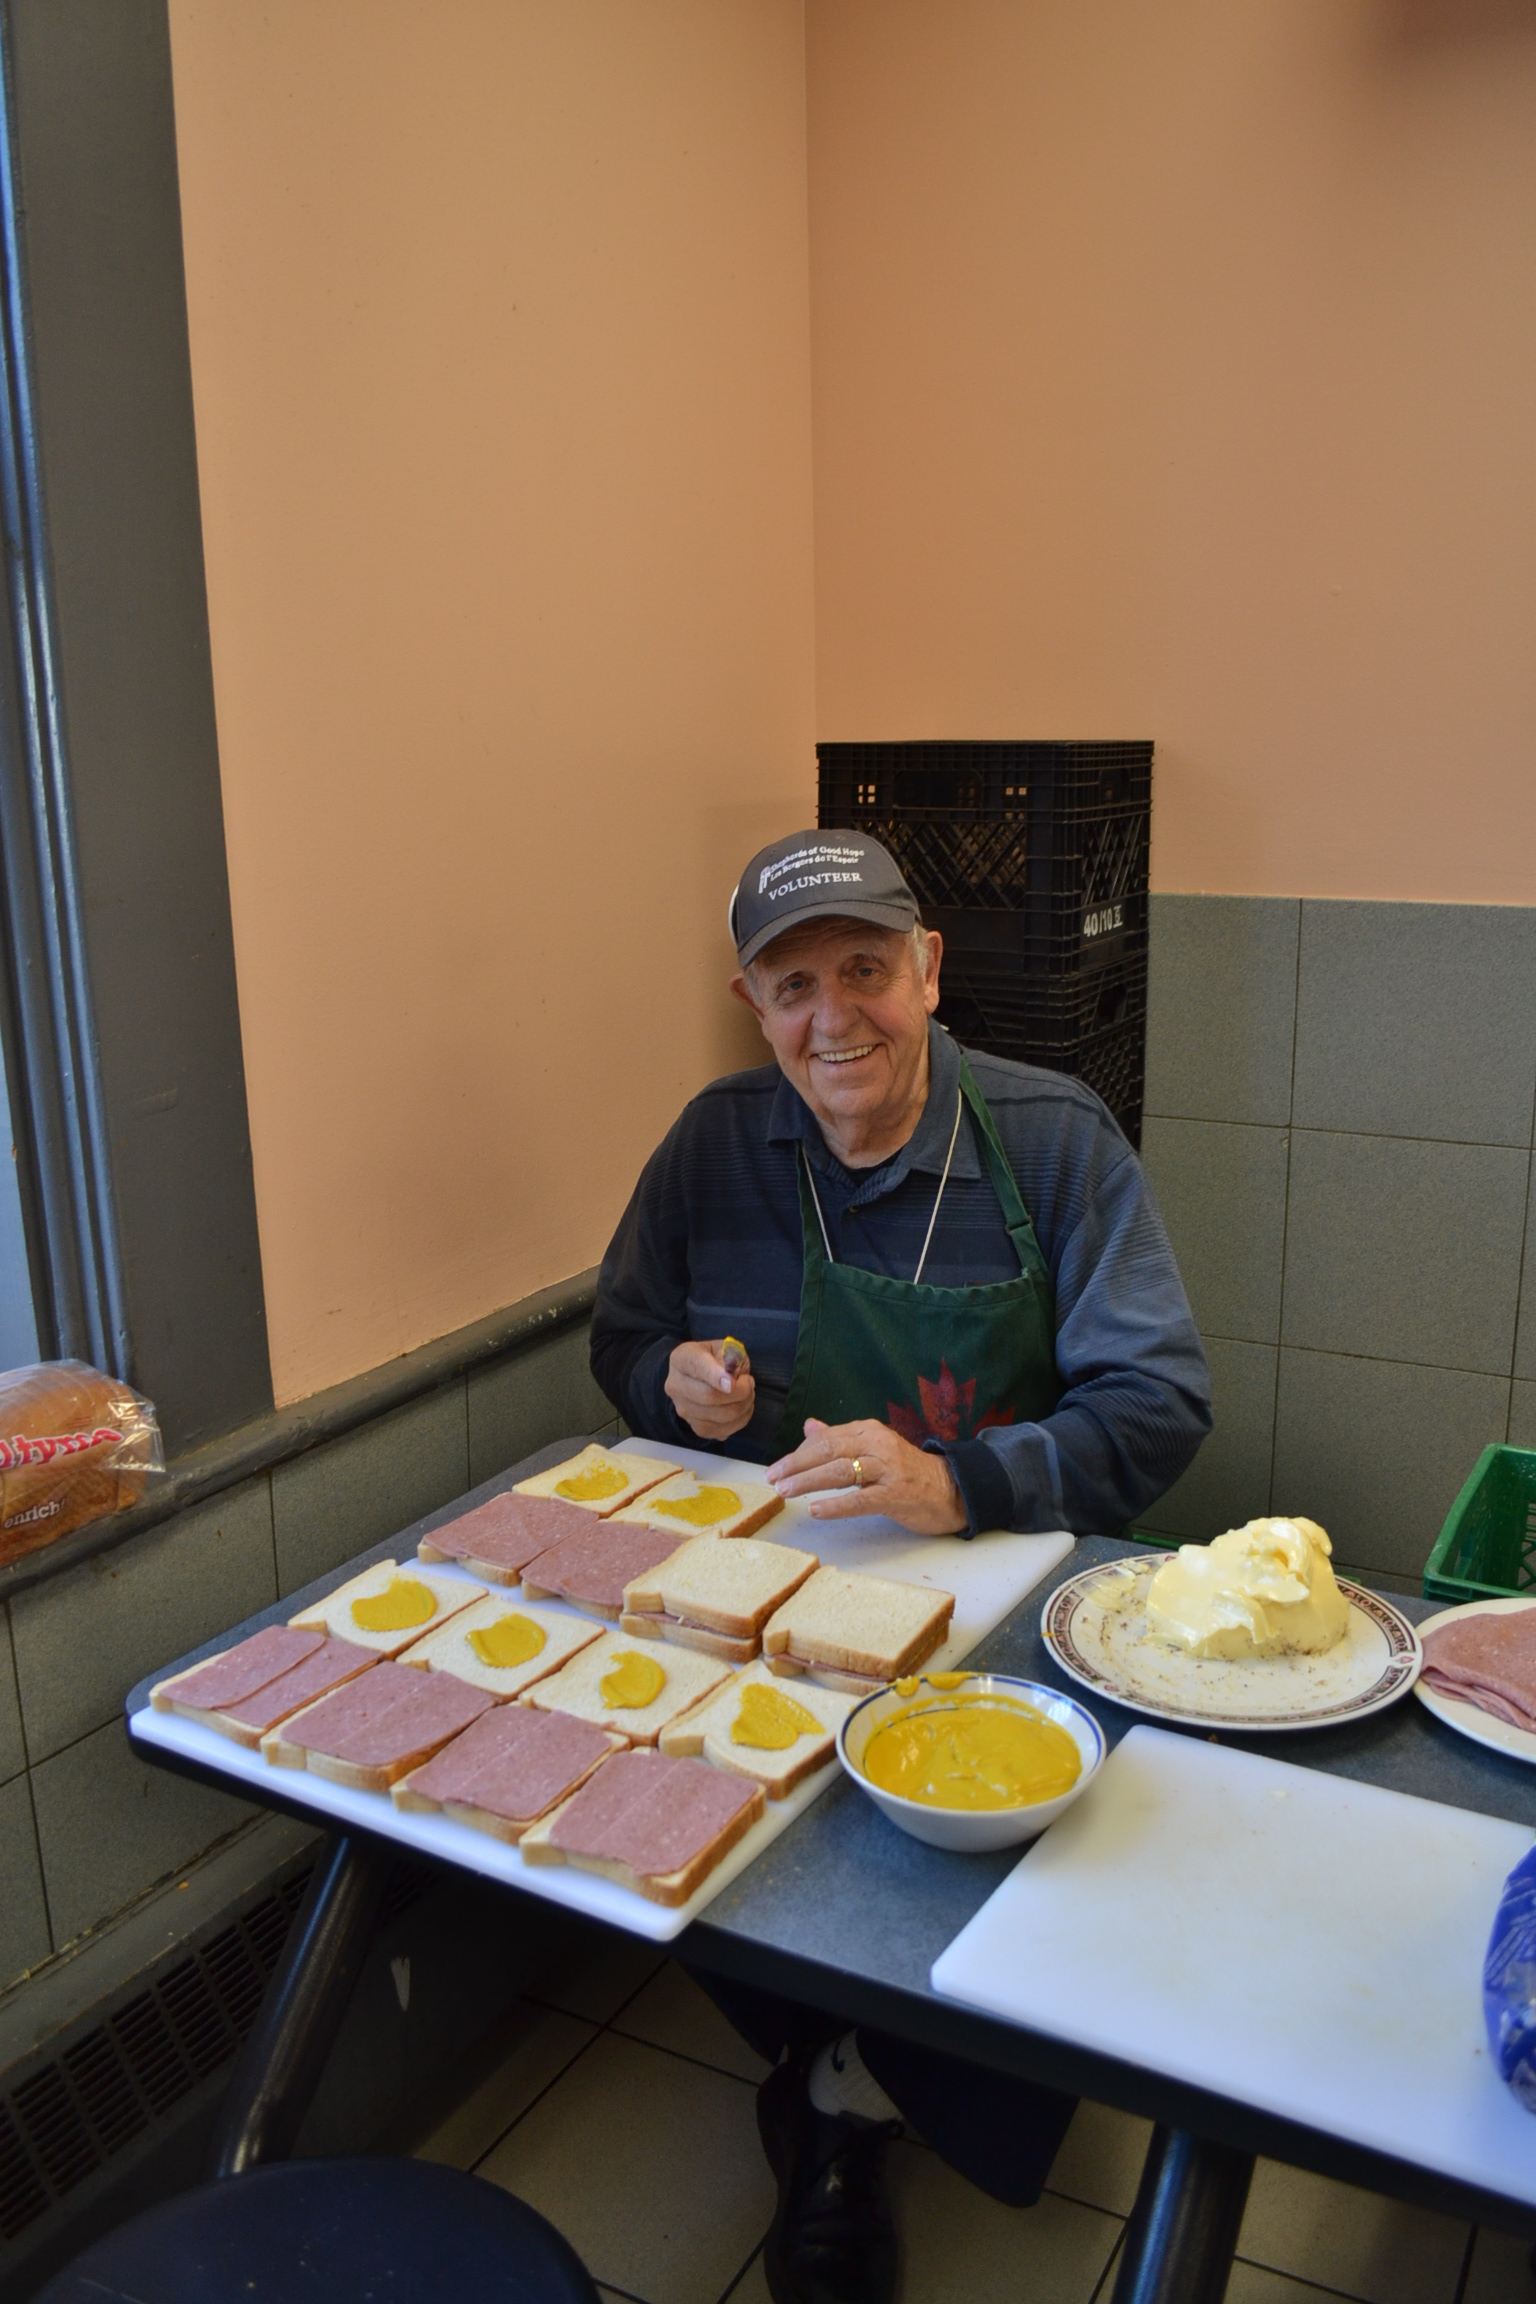 Image of man making sandwiches